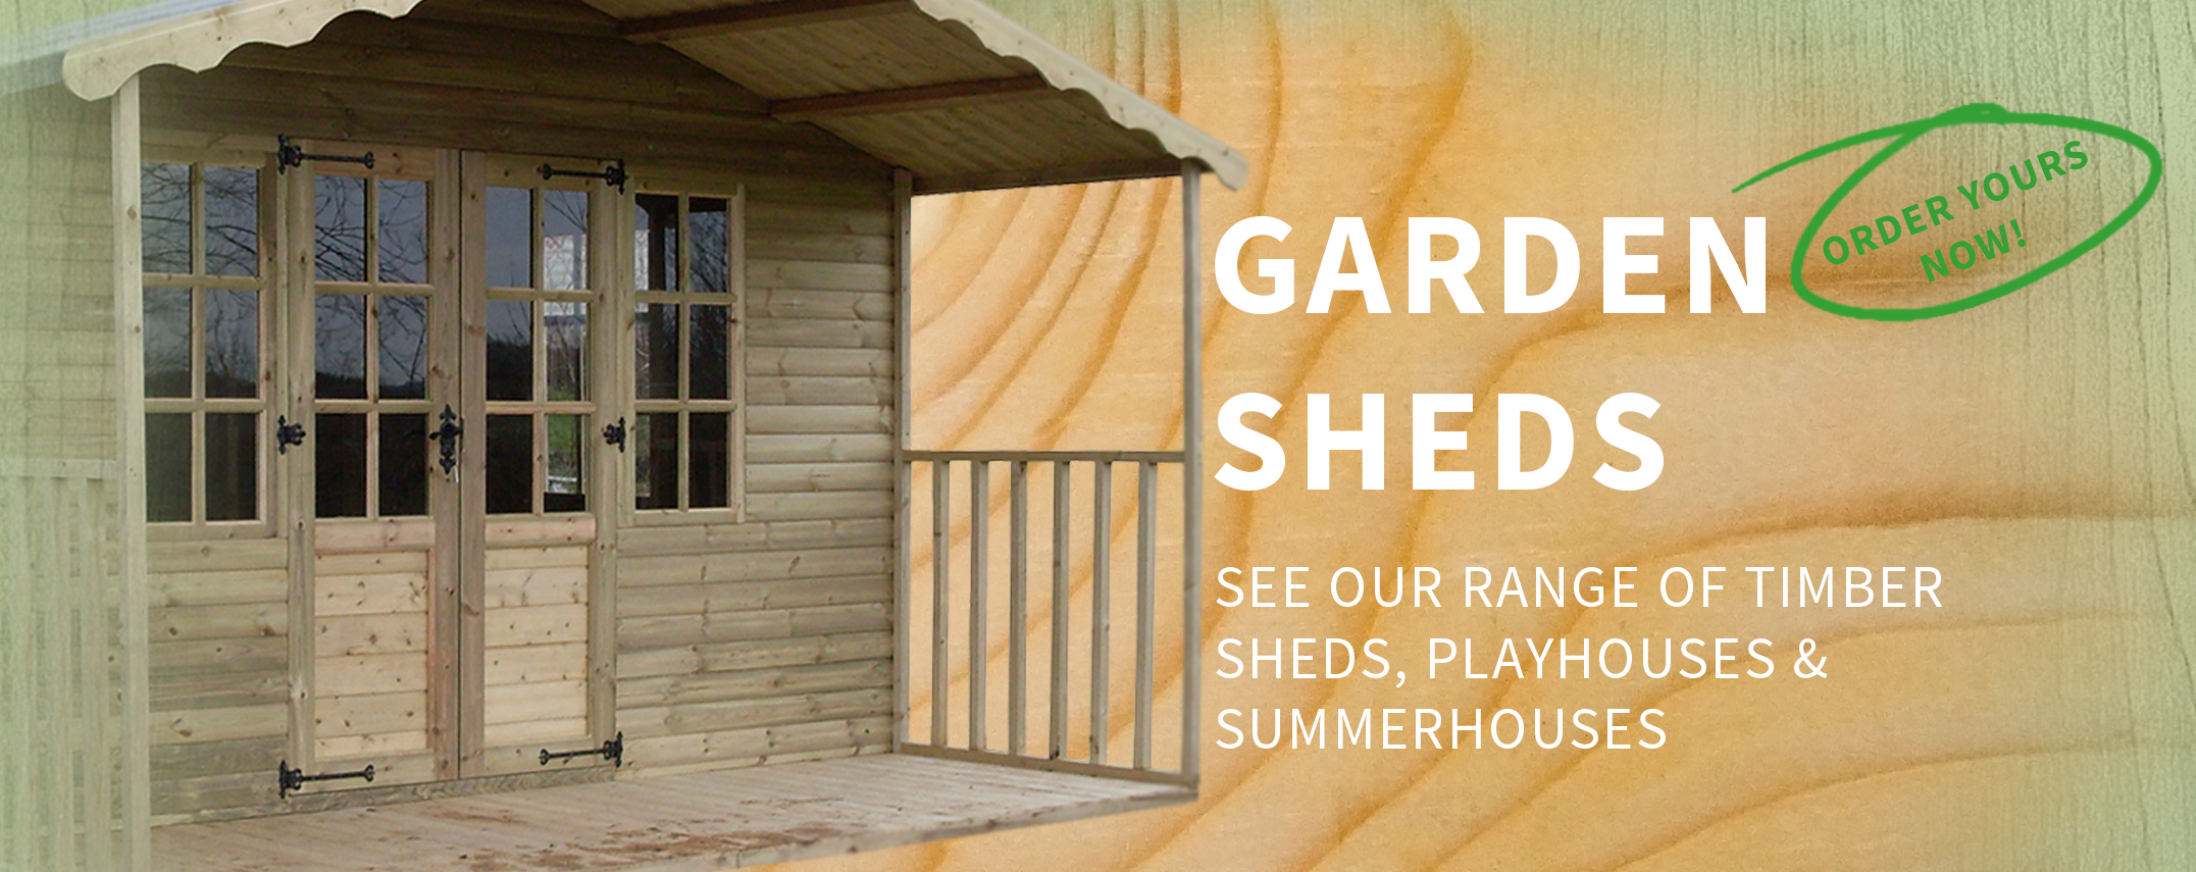 See our large range of garden sheds north west, playhouses and summerhouses, wooden sheds and small sheds included, perfect for garden storage